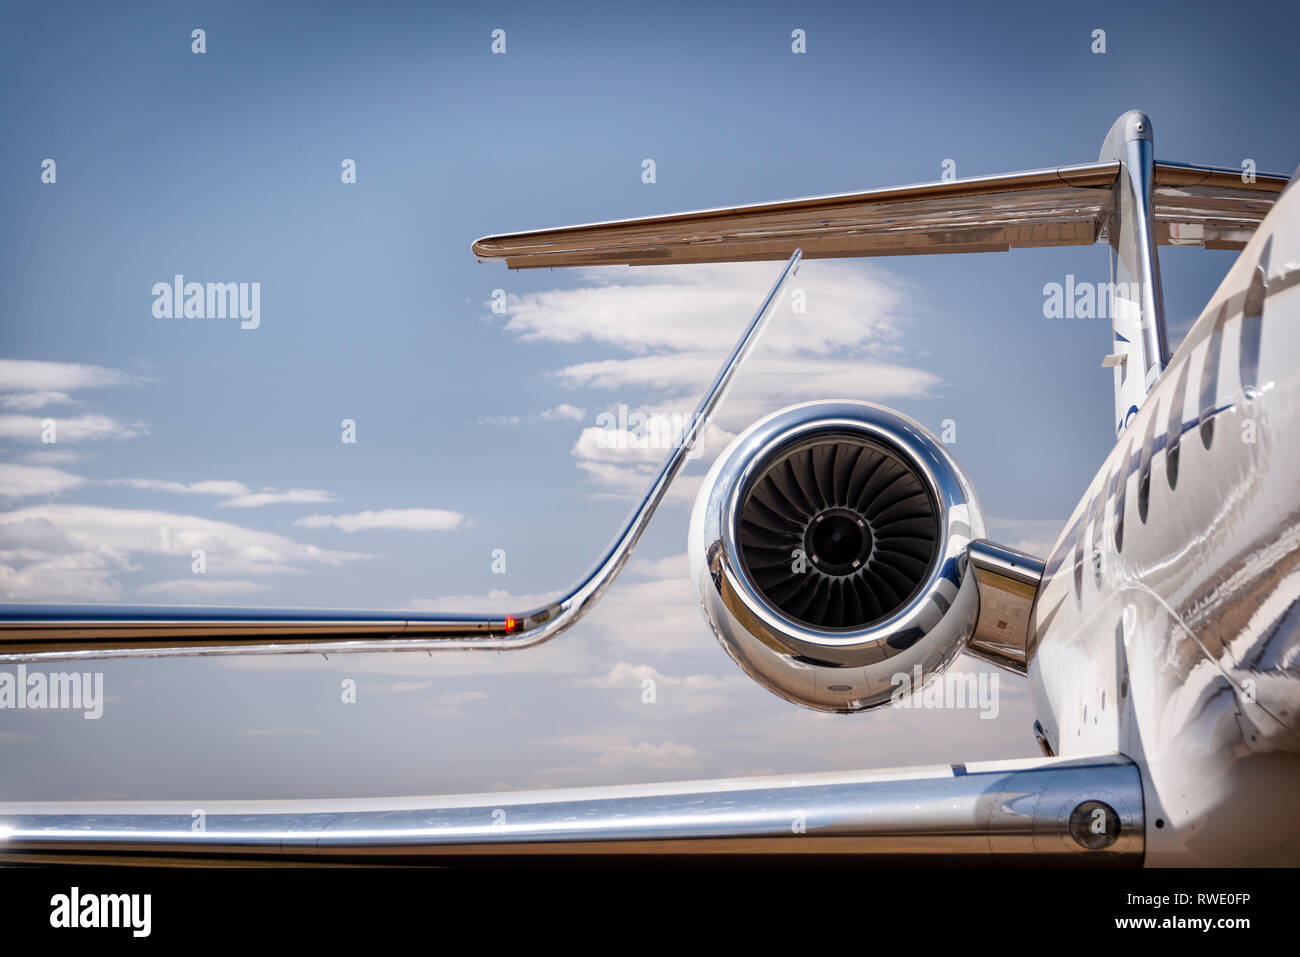 A winglet and engine of a luxury personal jet aircraft against a blue sky with cloud - Stock Image